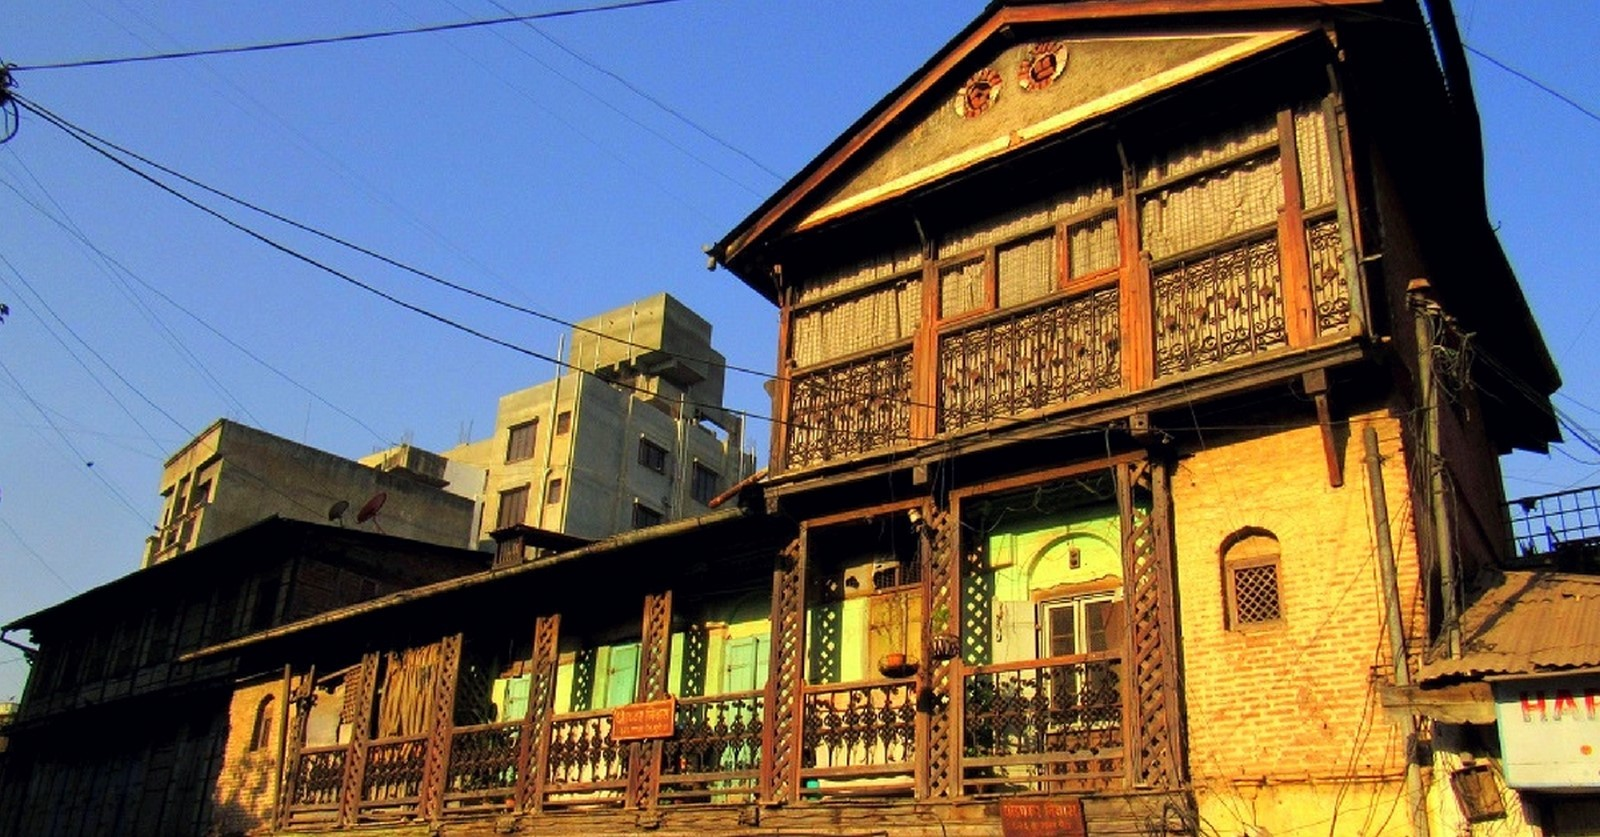 Architecture of Indian Cities_ Pune- Queen of the Deccan - Sheet8